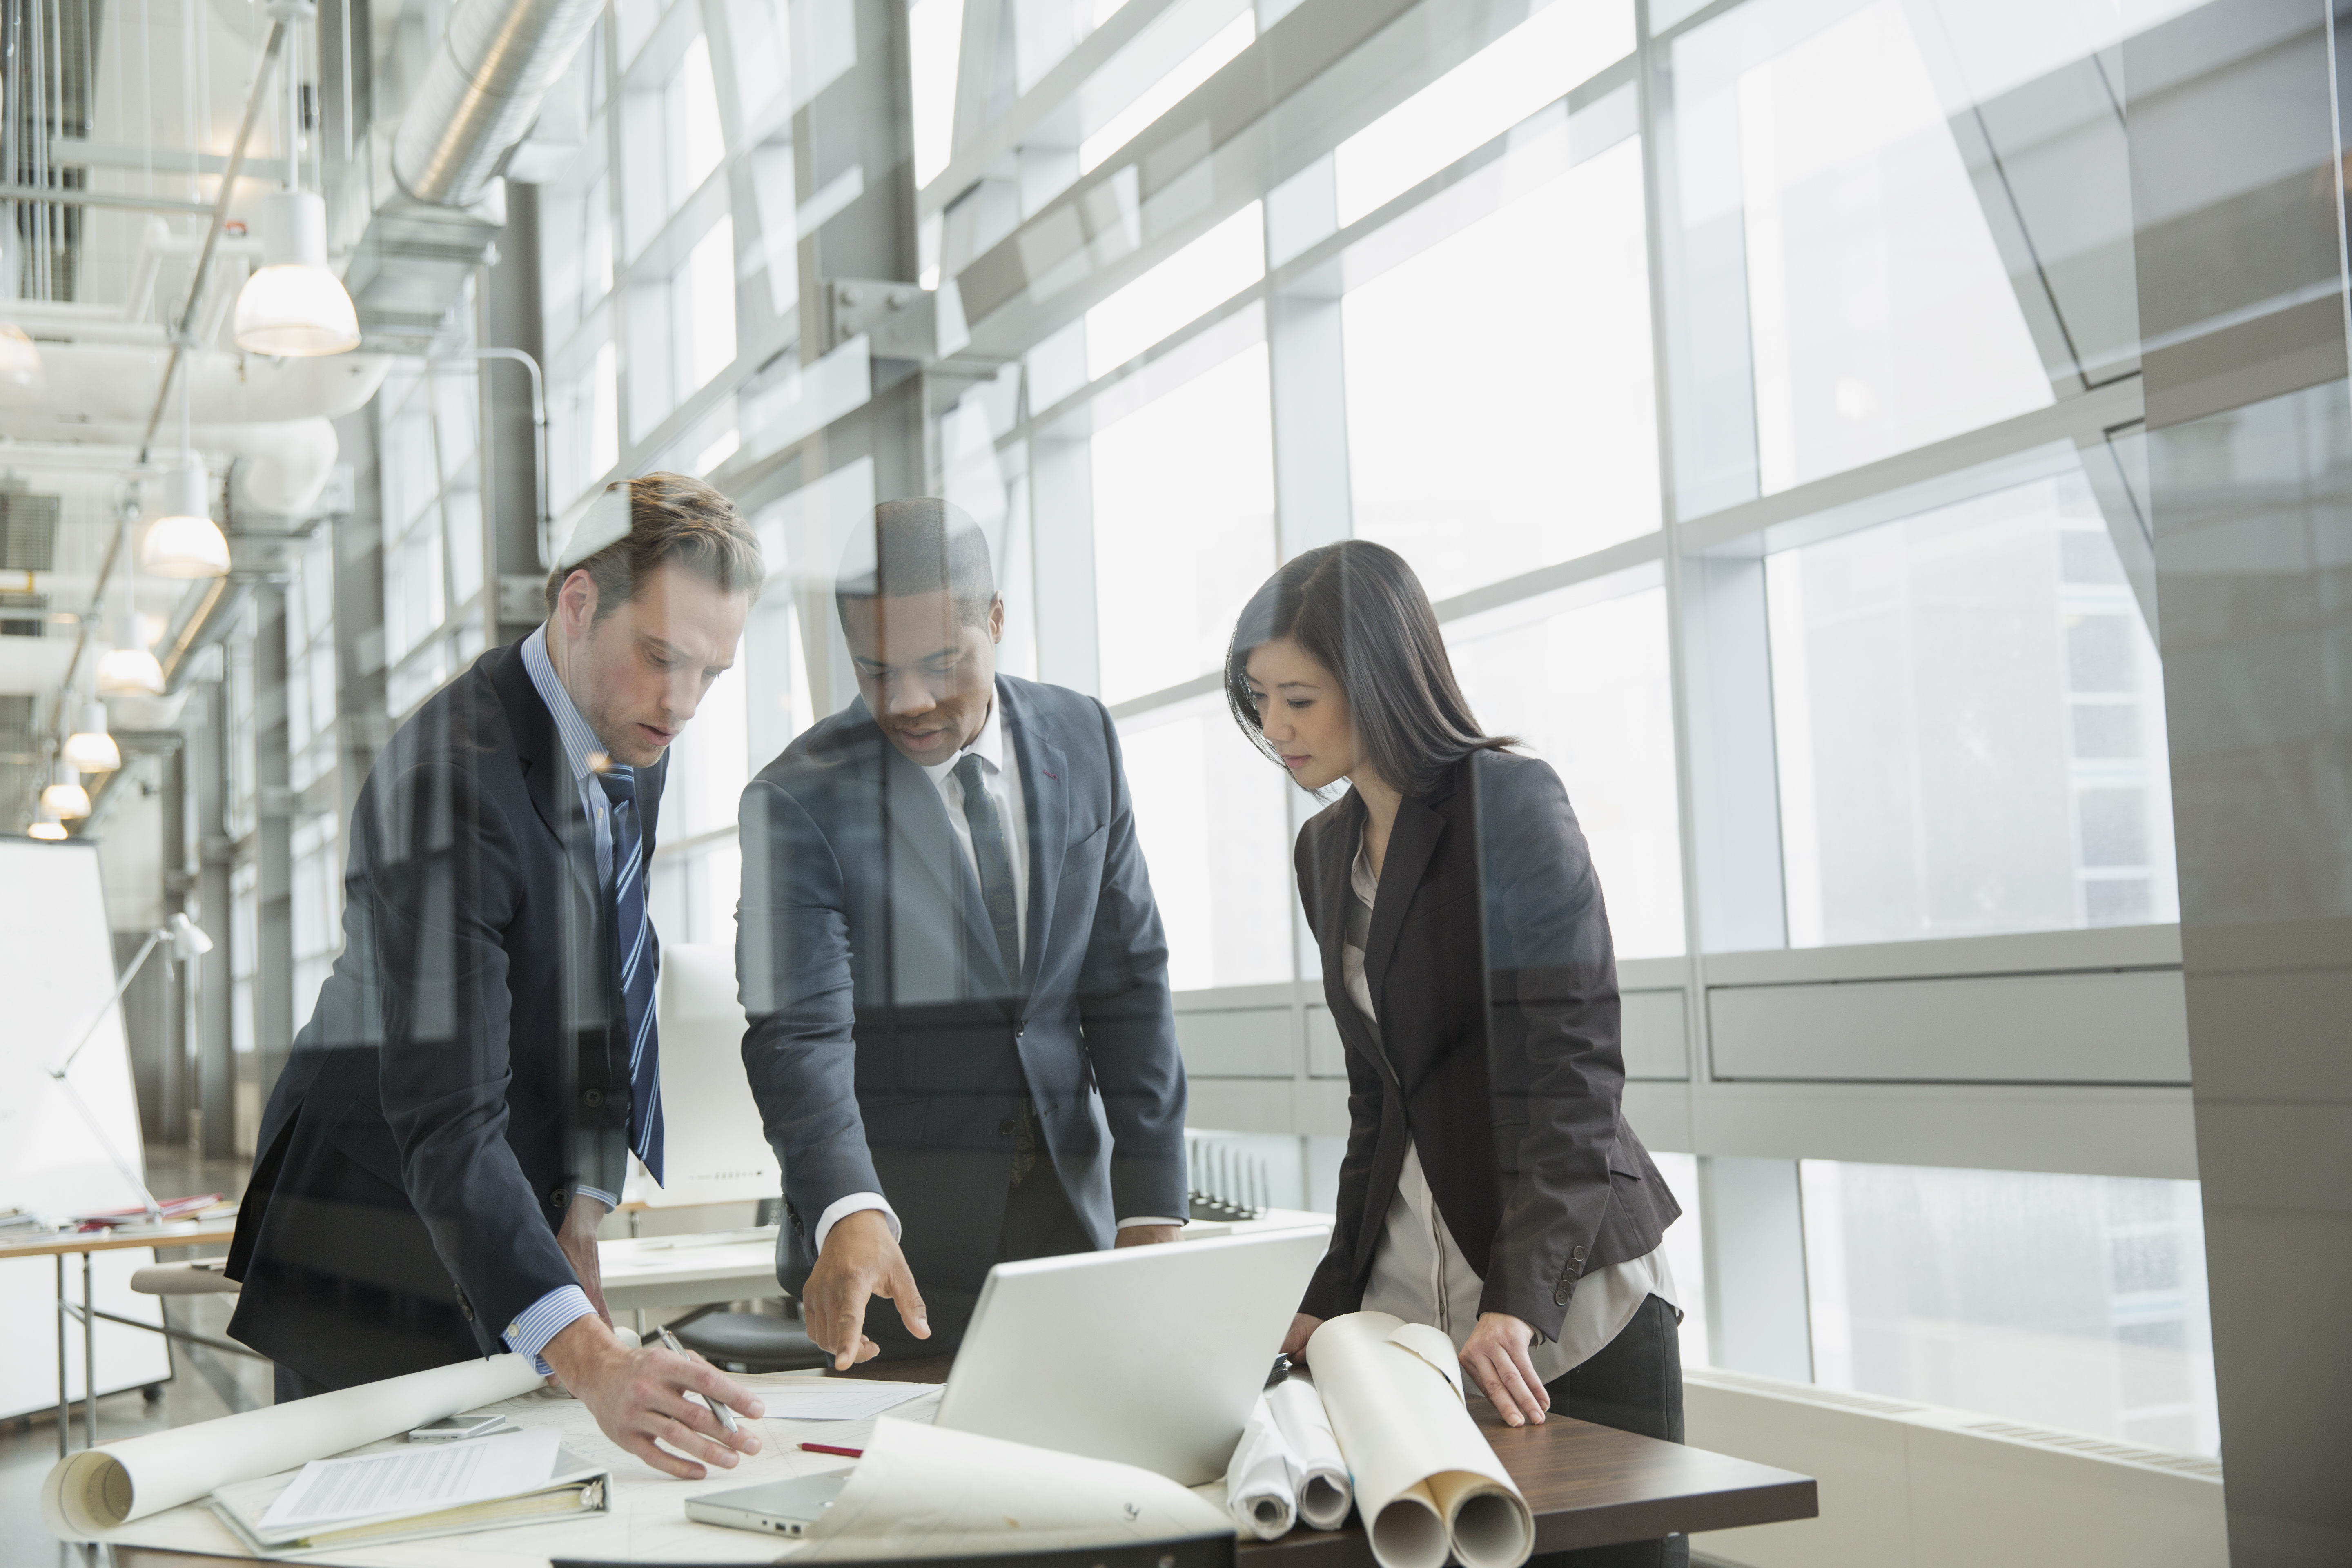 Business people reviewing blueprints at desk